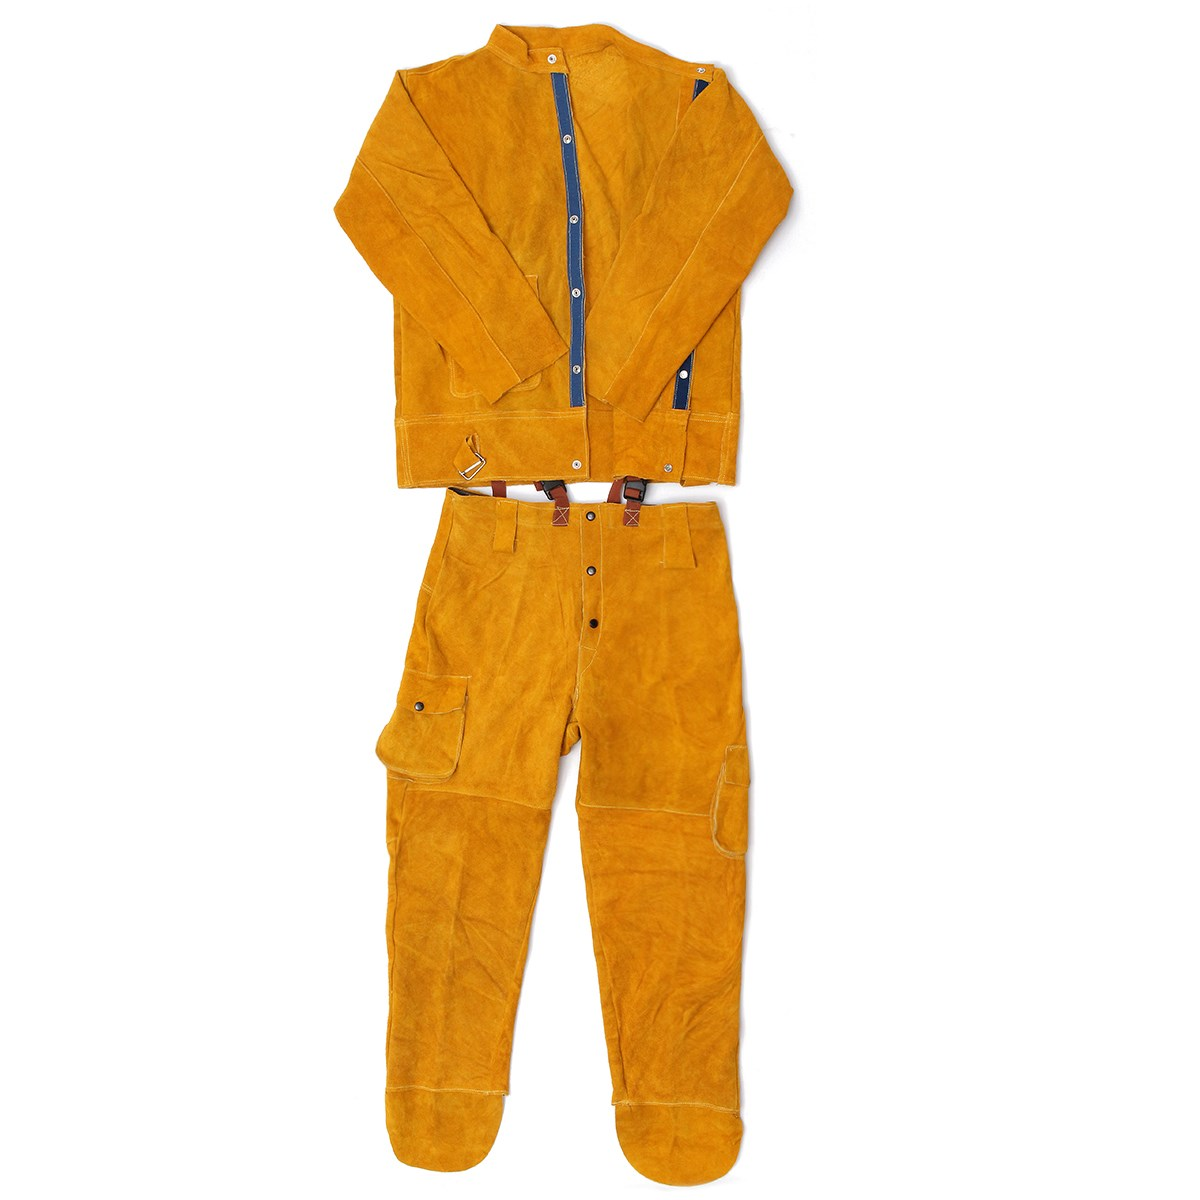 One Set Leather Welding Strap Trousers & Coat Protective Clothing Apparel Suit Welder Safety Clothing